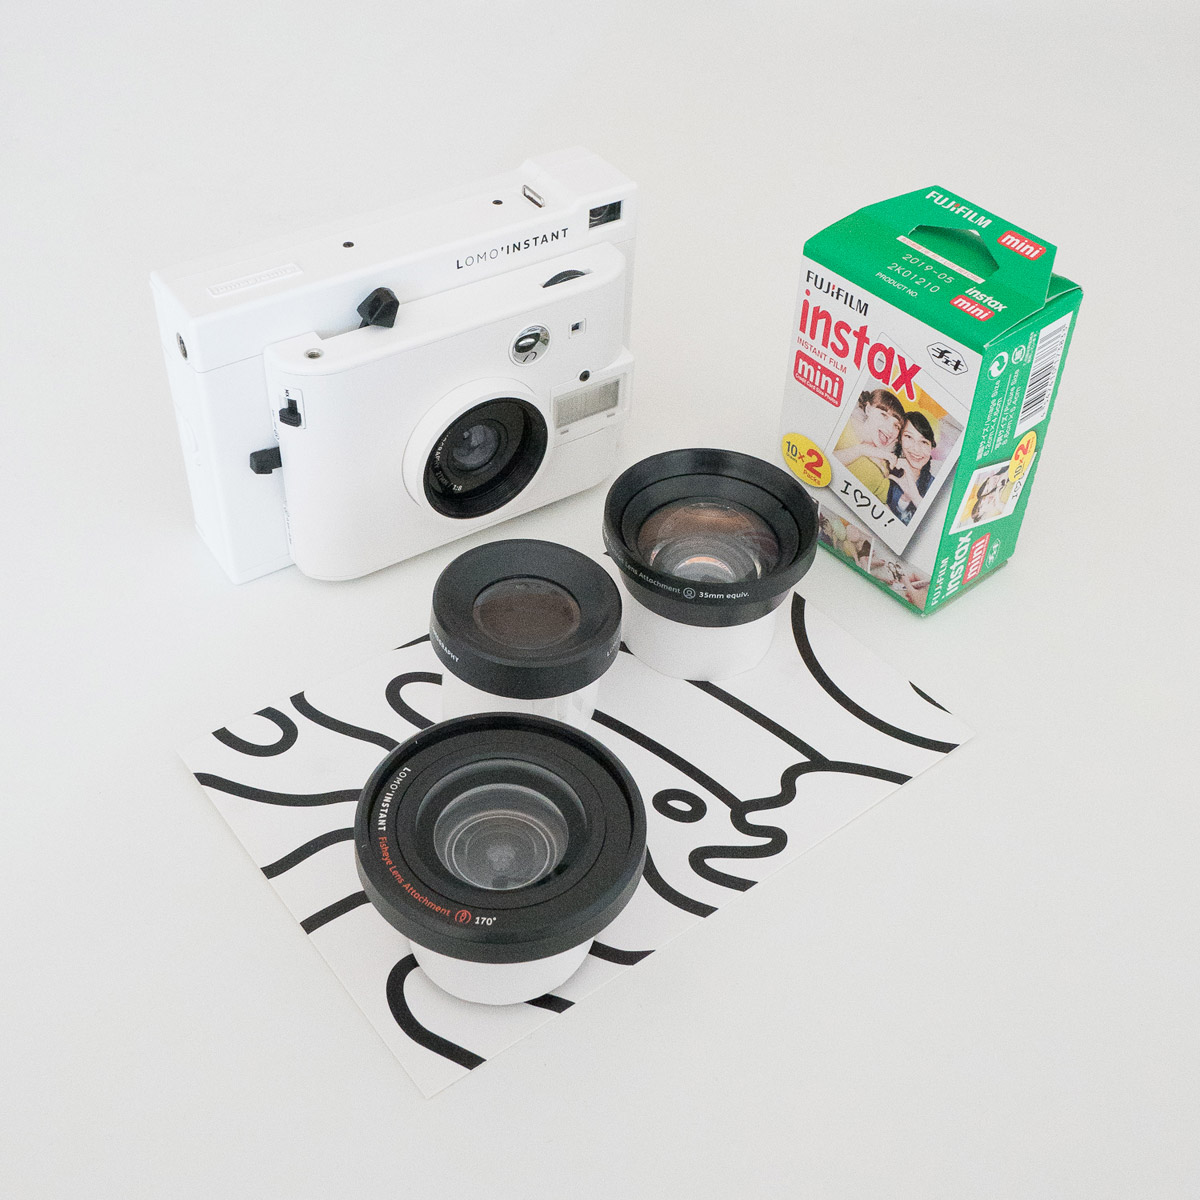 Lomo'Instant Camera and lenses